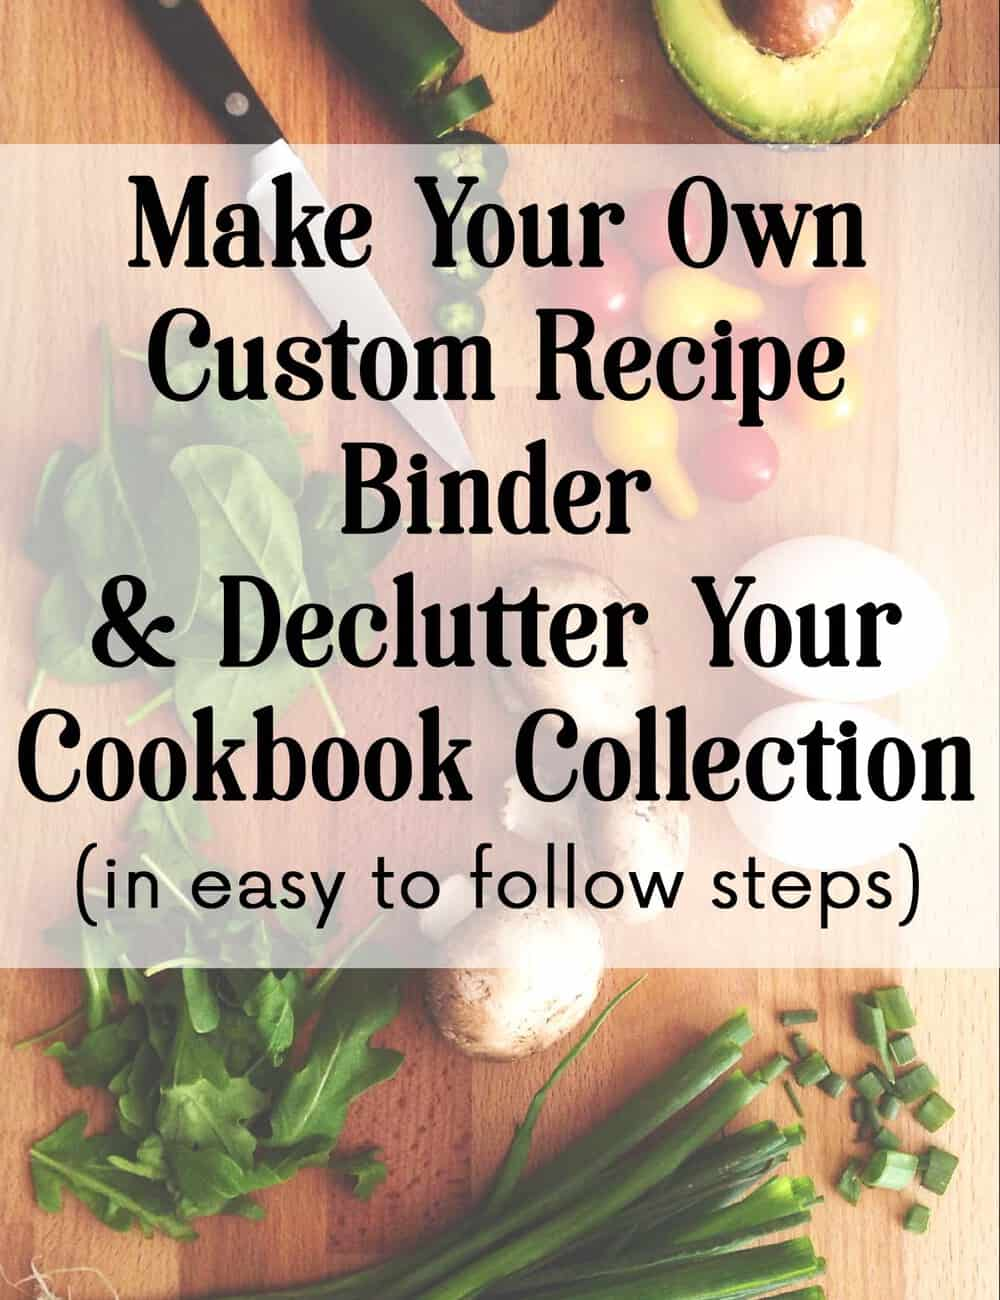 Make Your Own Recipe Binder & Declutter Your Cookbook Collection